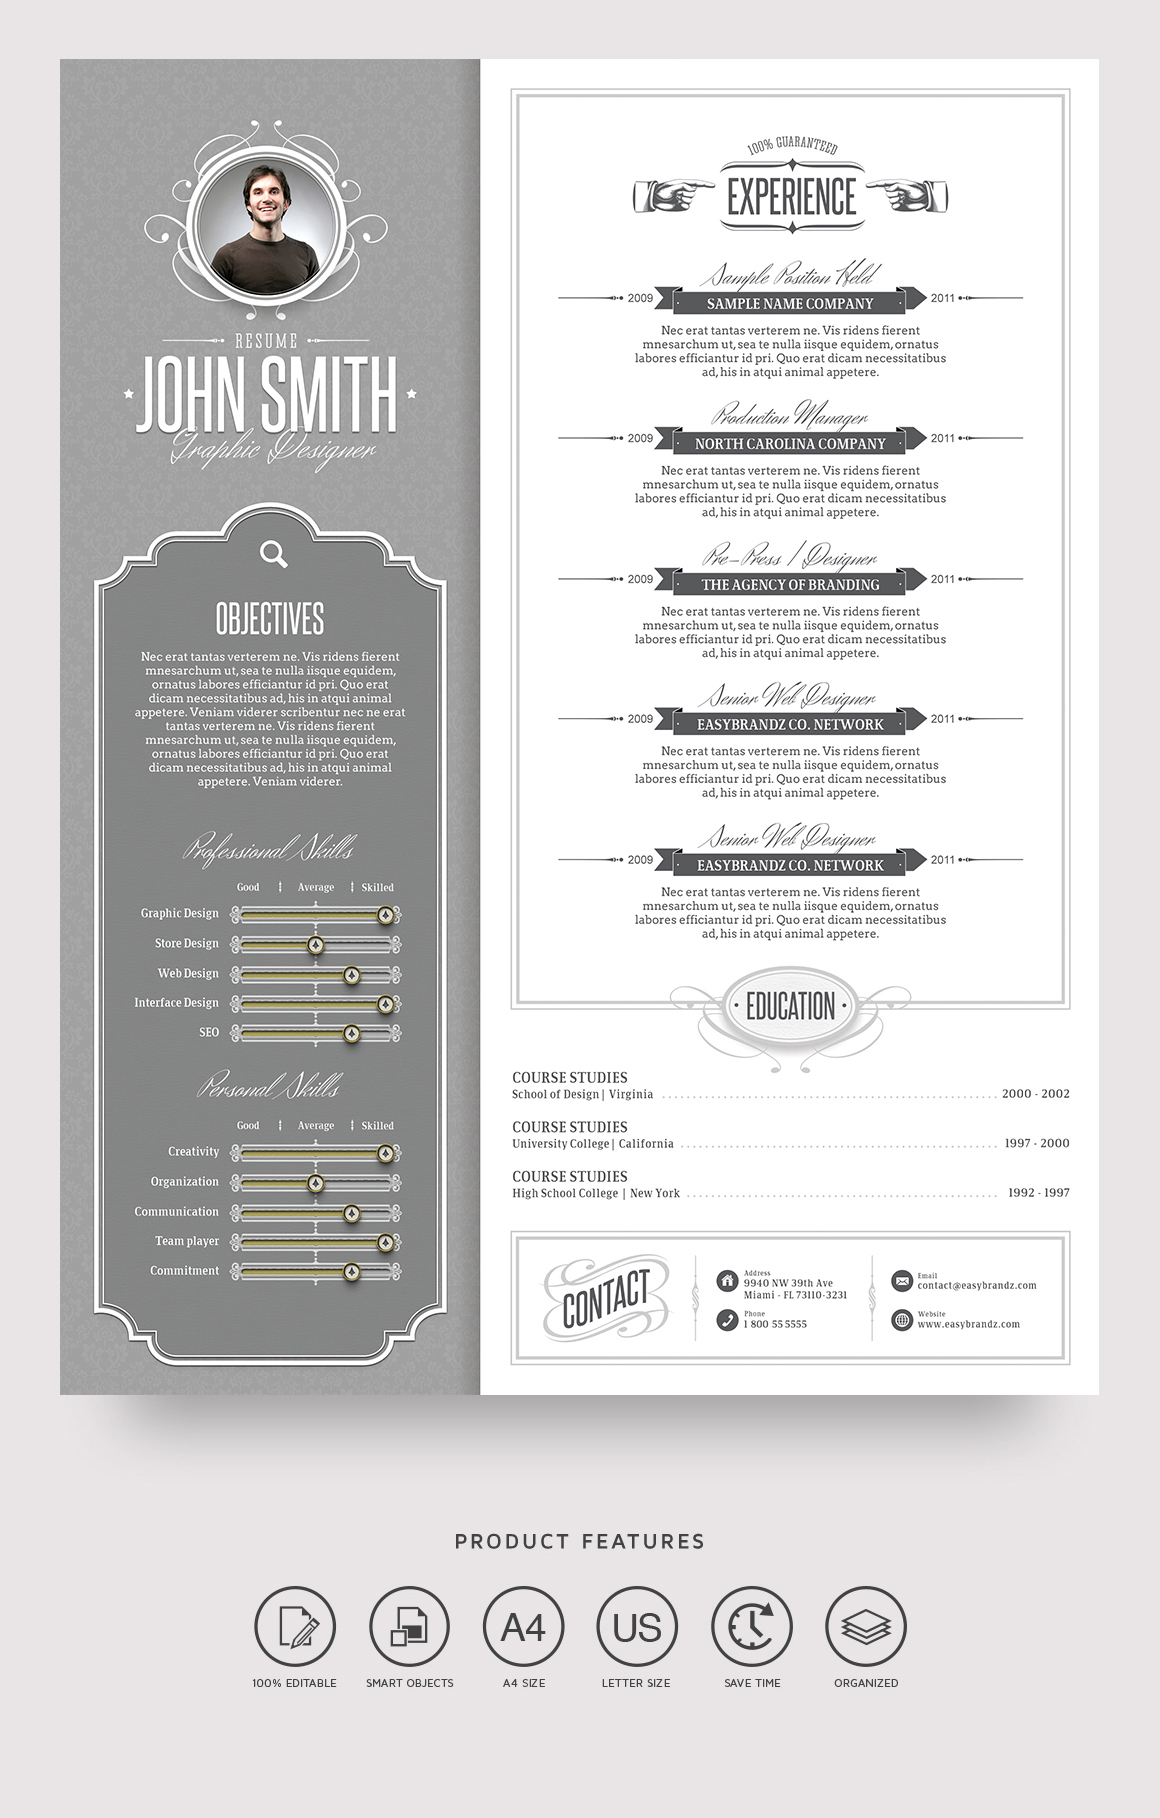 How to make my cv stand out